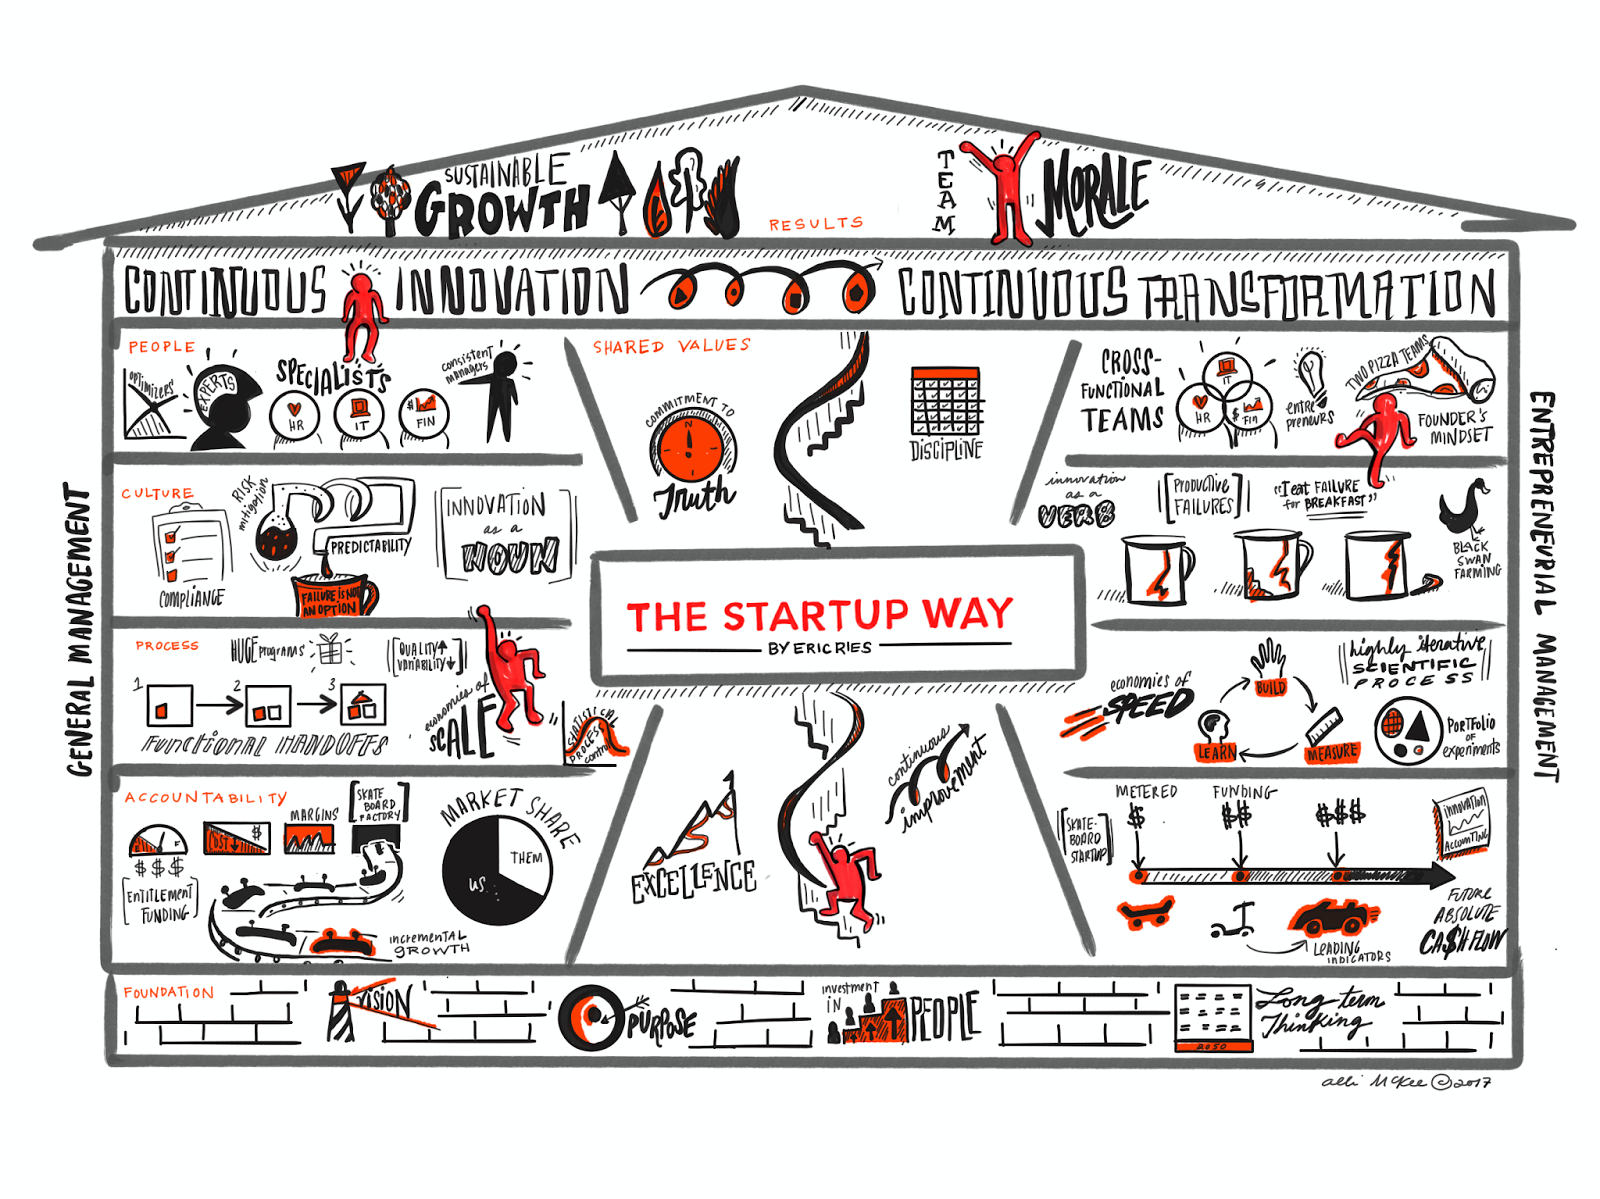 The Impact of The Startup Way